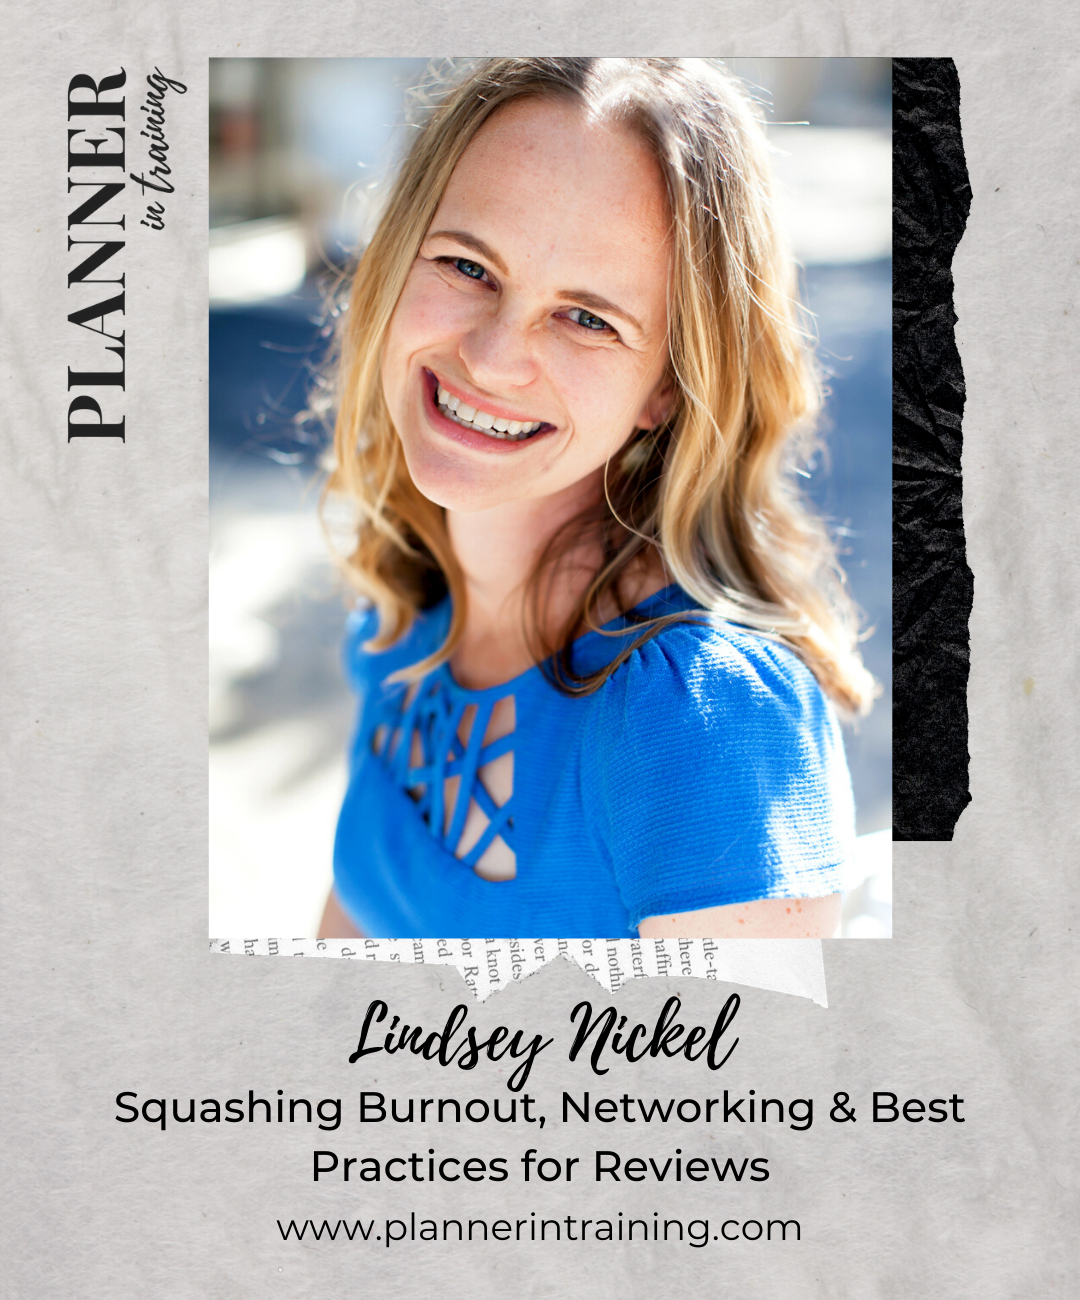 LINDSEY NICKEL - LOVELY DAY STRATEGY- PLANNER IN TRAININGPODCAST - WEDDING PLANNER EDUCATION